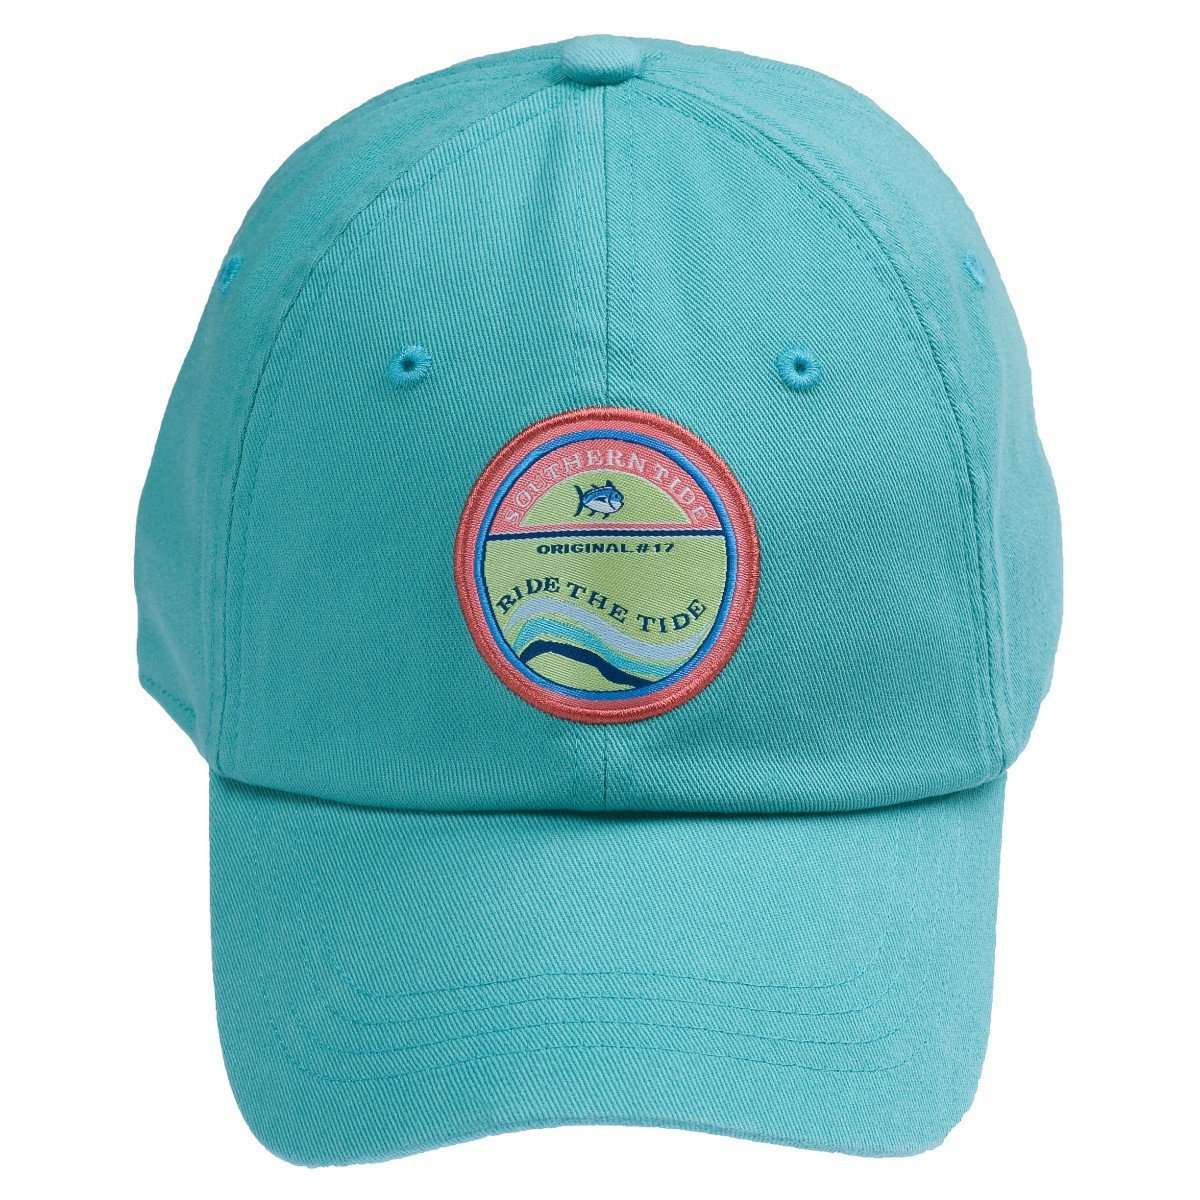 Hats/Visors - Ride The Tide Hat In Teal By Southern Tide